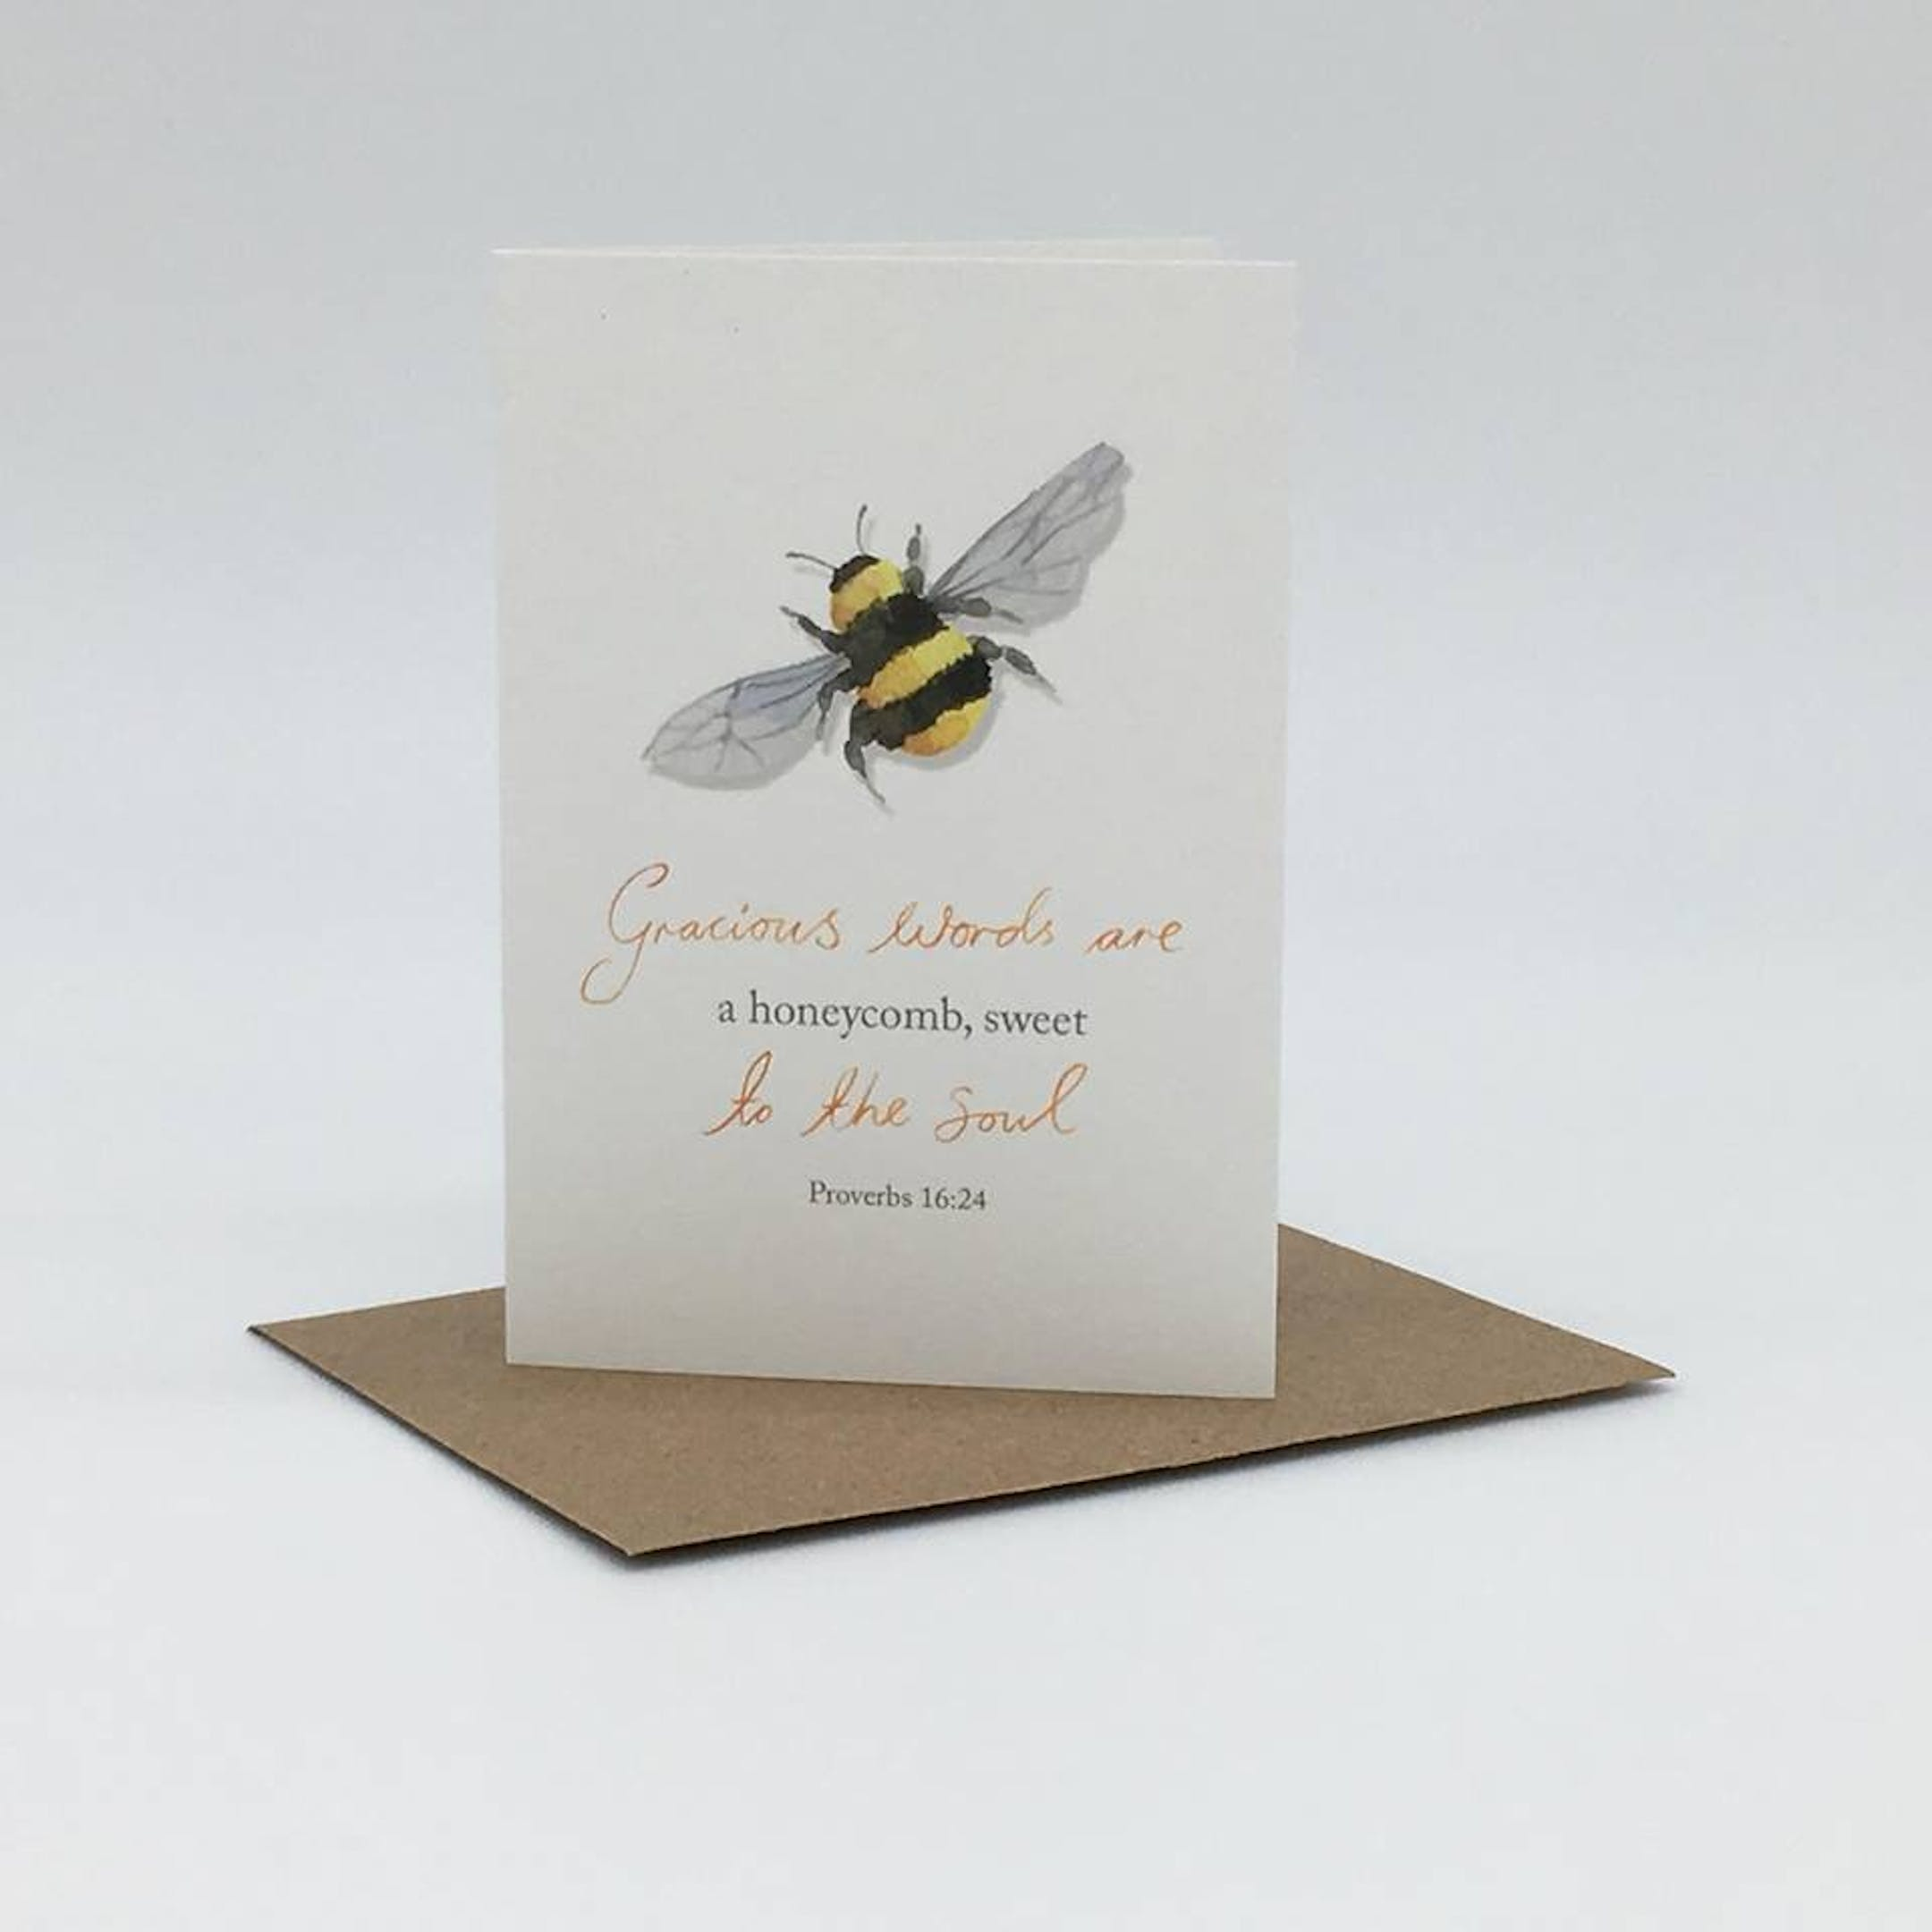 'Honeycomb' Mini Card - Proverbs 16:24 - Forget-Me-Not Christian Cards